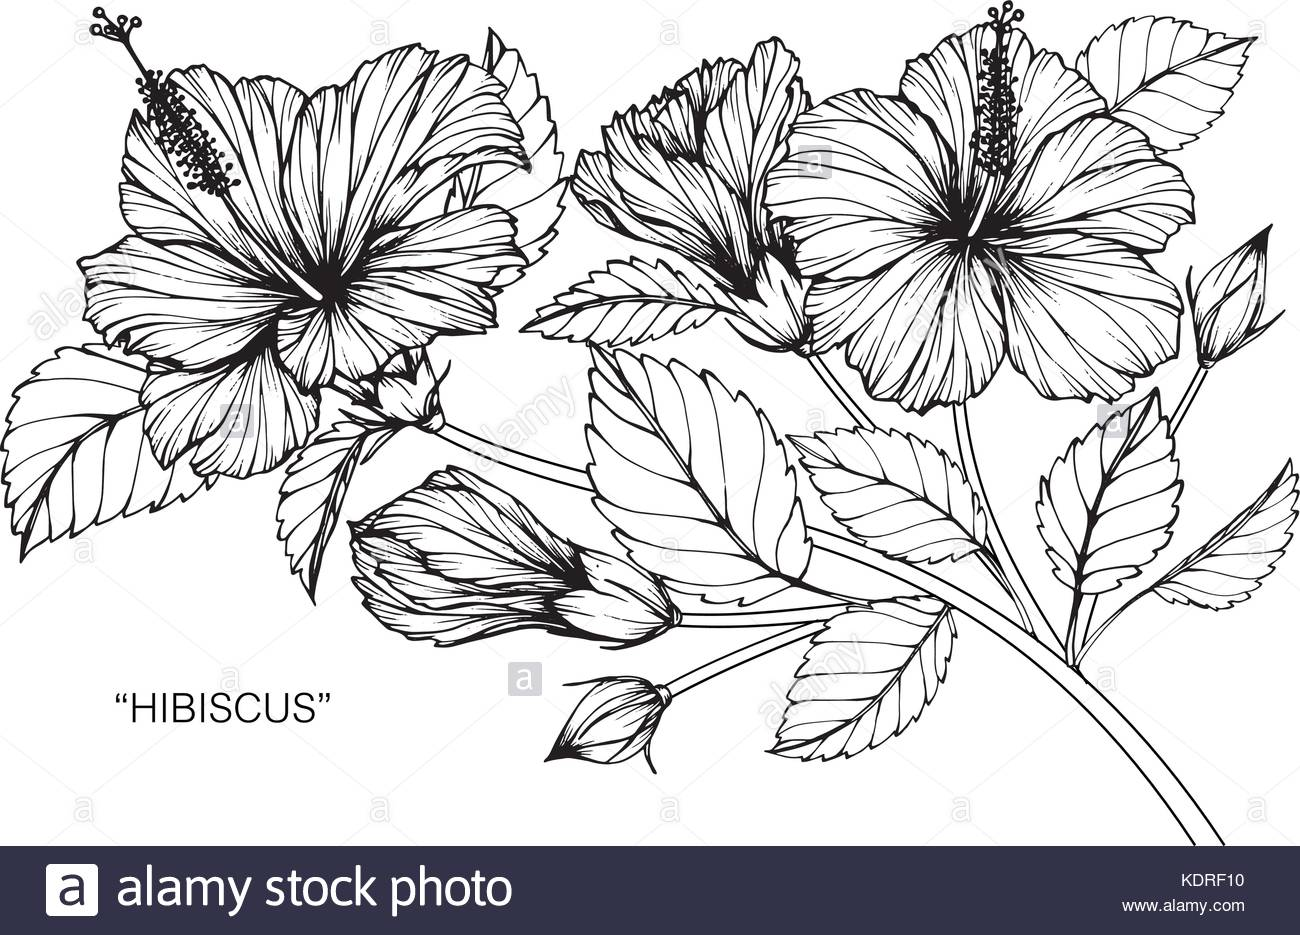 1300x935 Hibiscus Flower Drawing Illustration. Black And White With Line